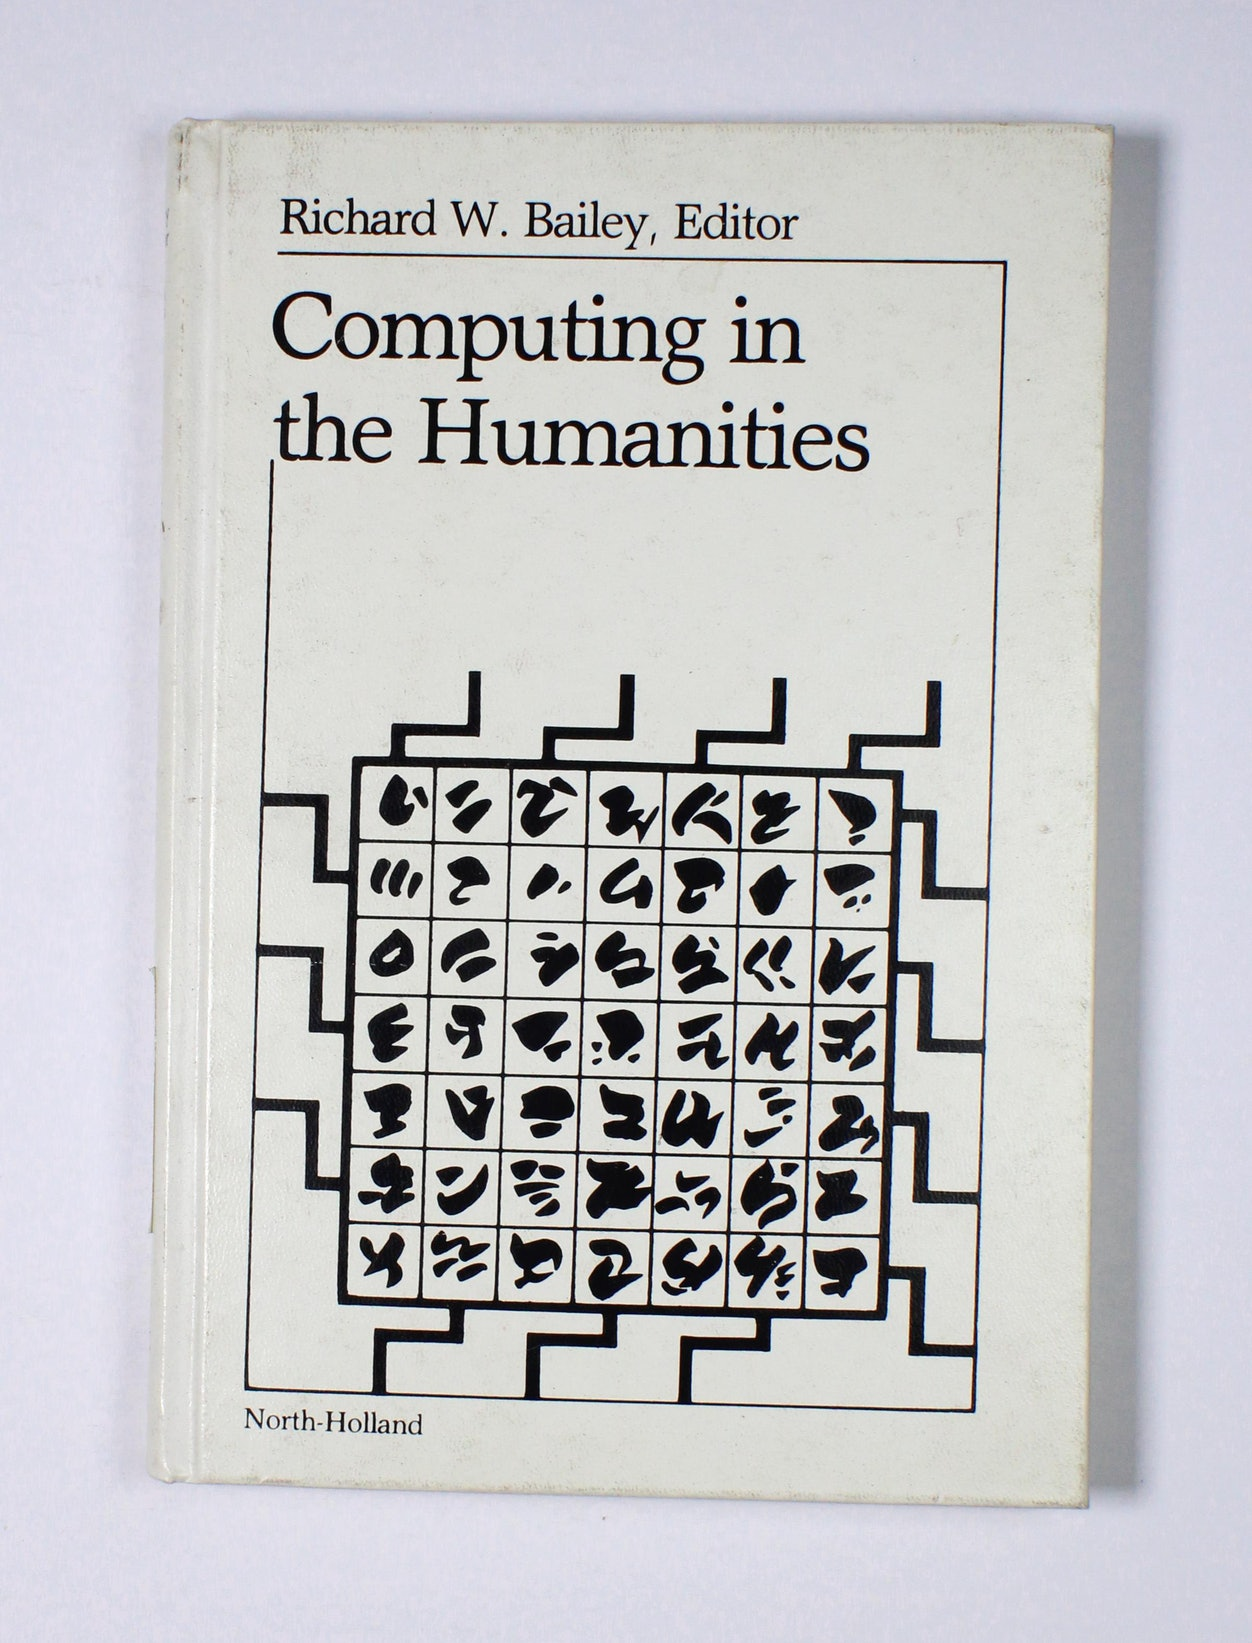 Computing in the Humanities